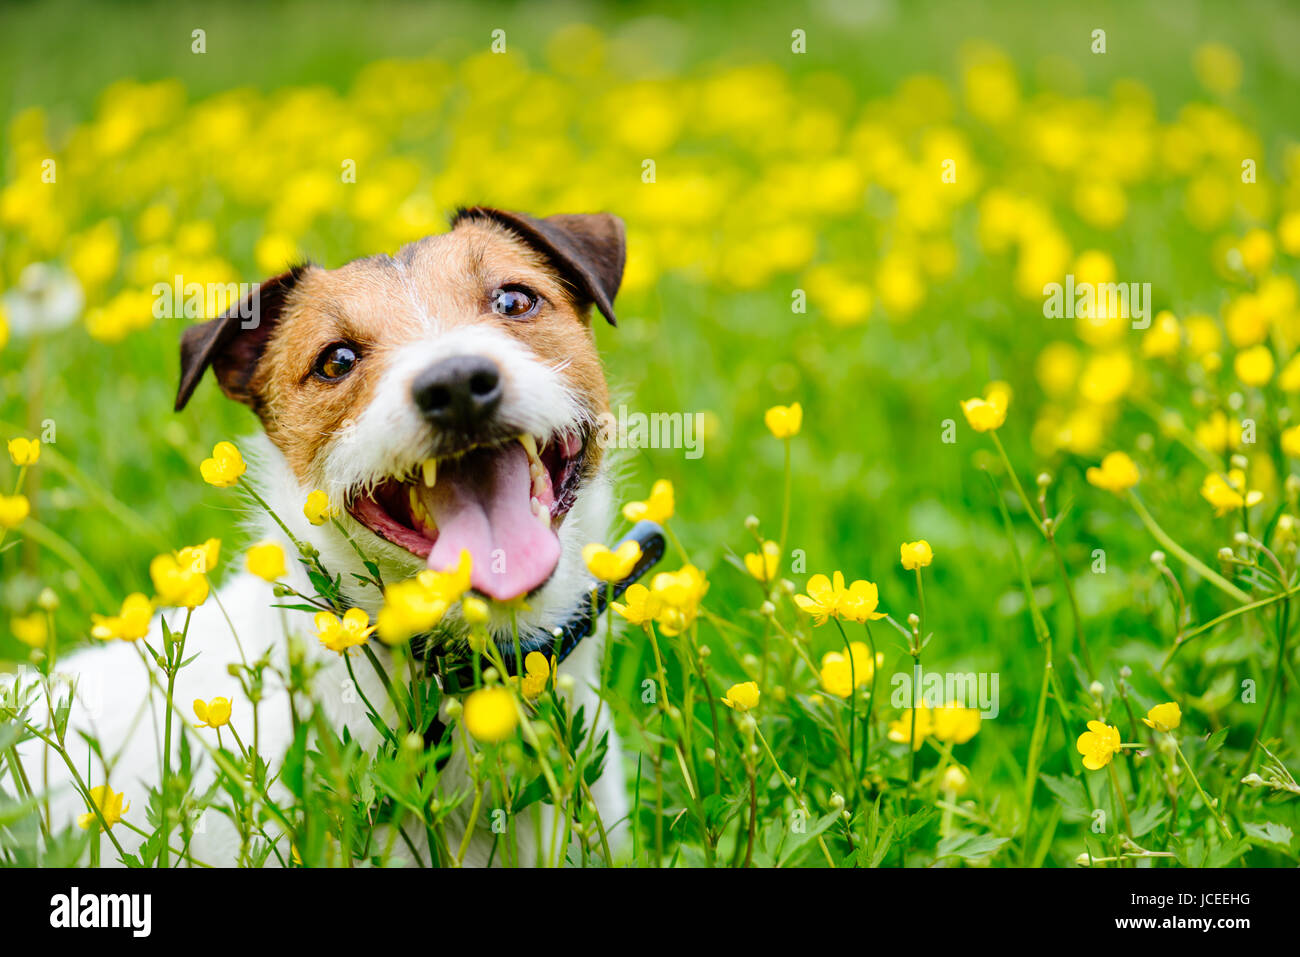 Happy dog sitting at  field of buttercups flowers looking at camera - Stock Image